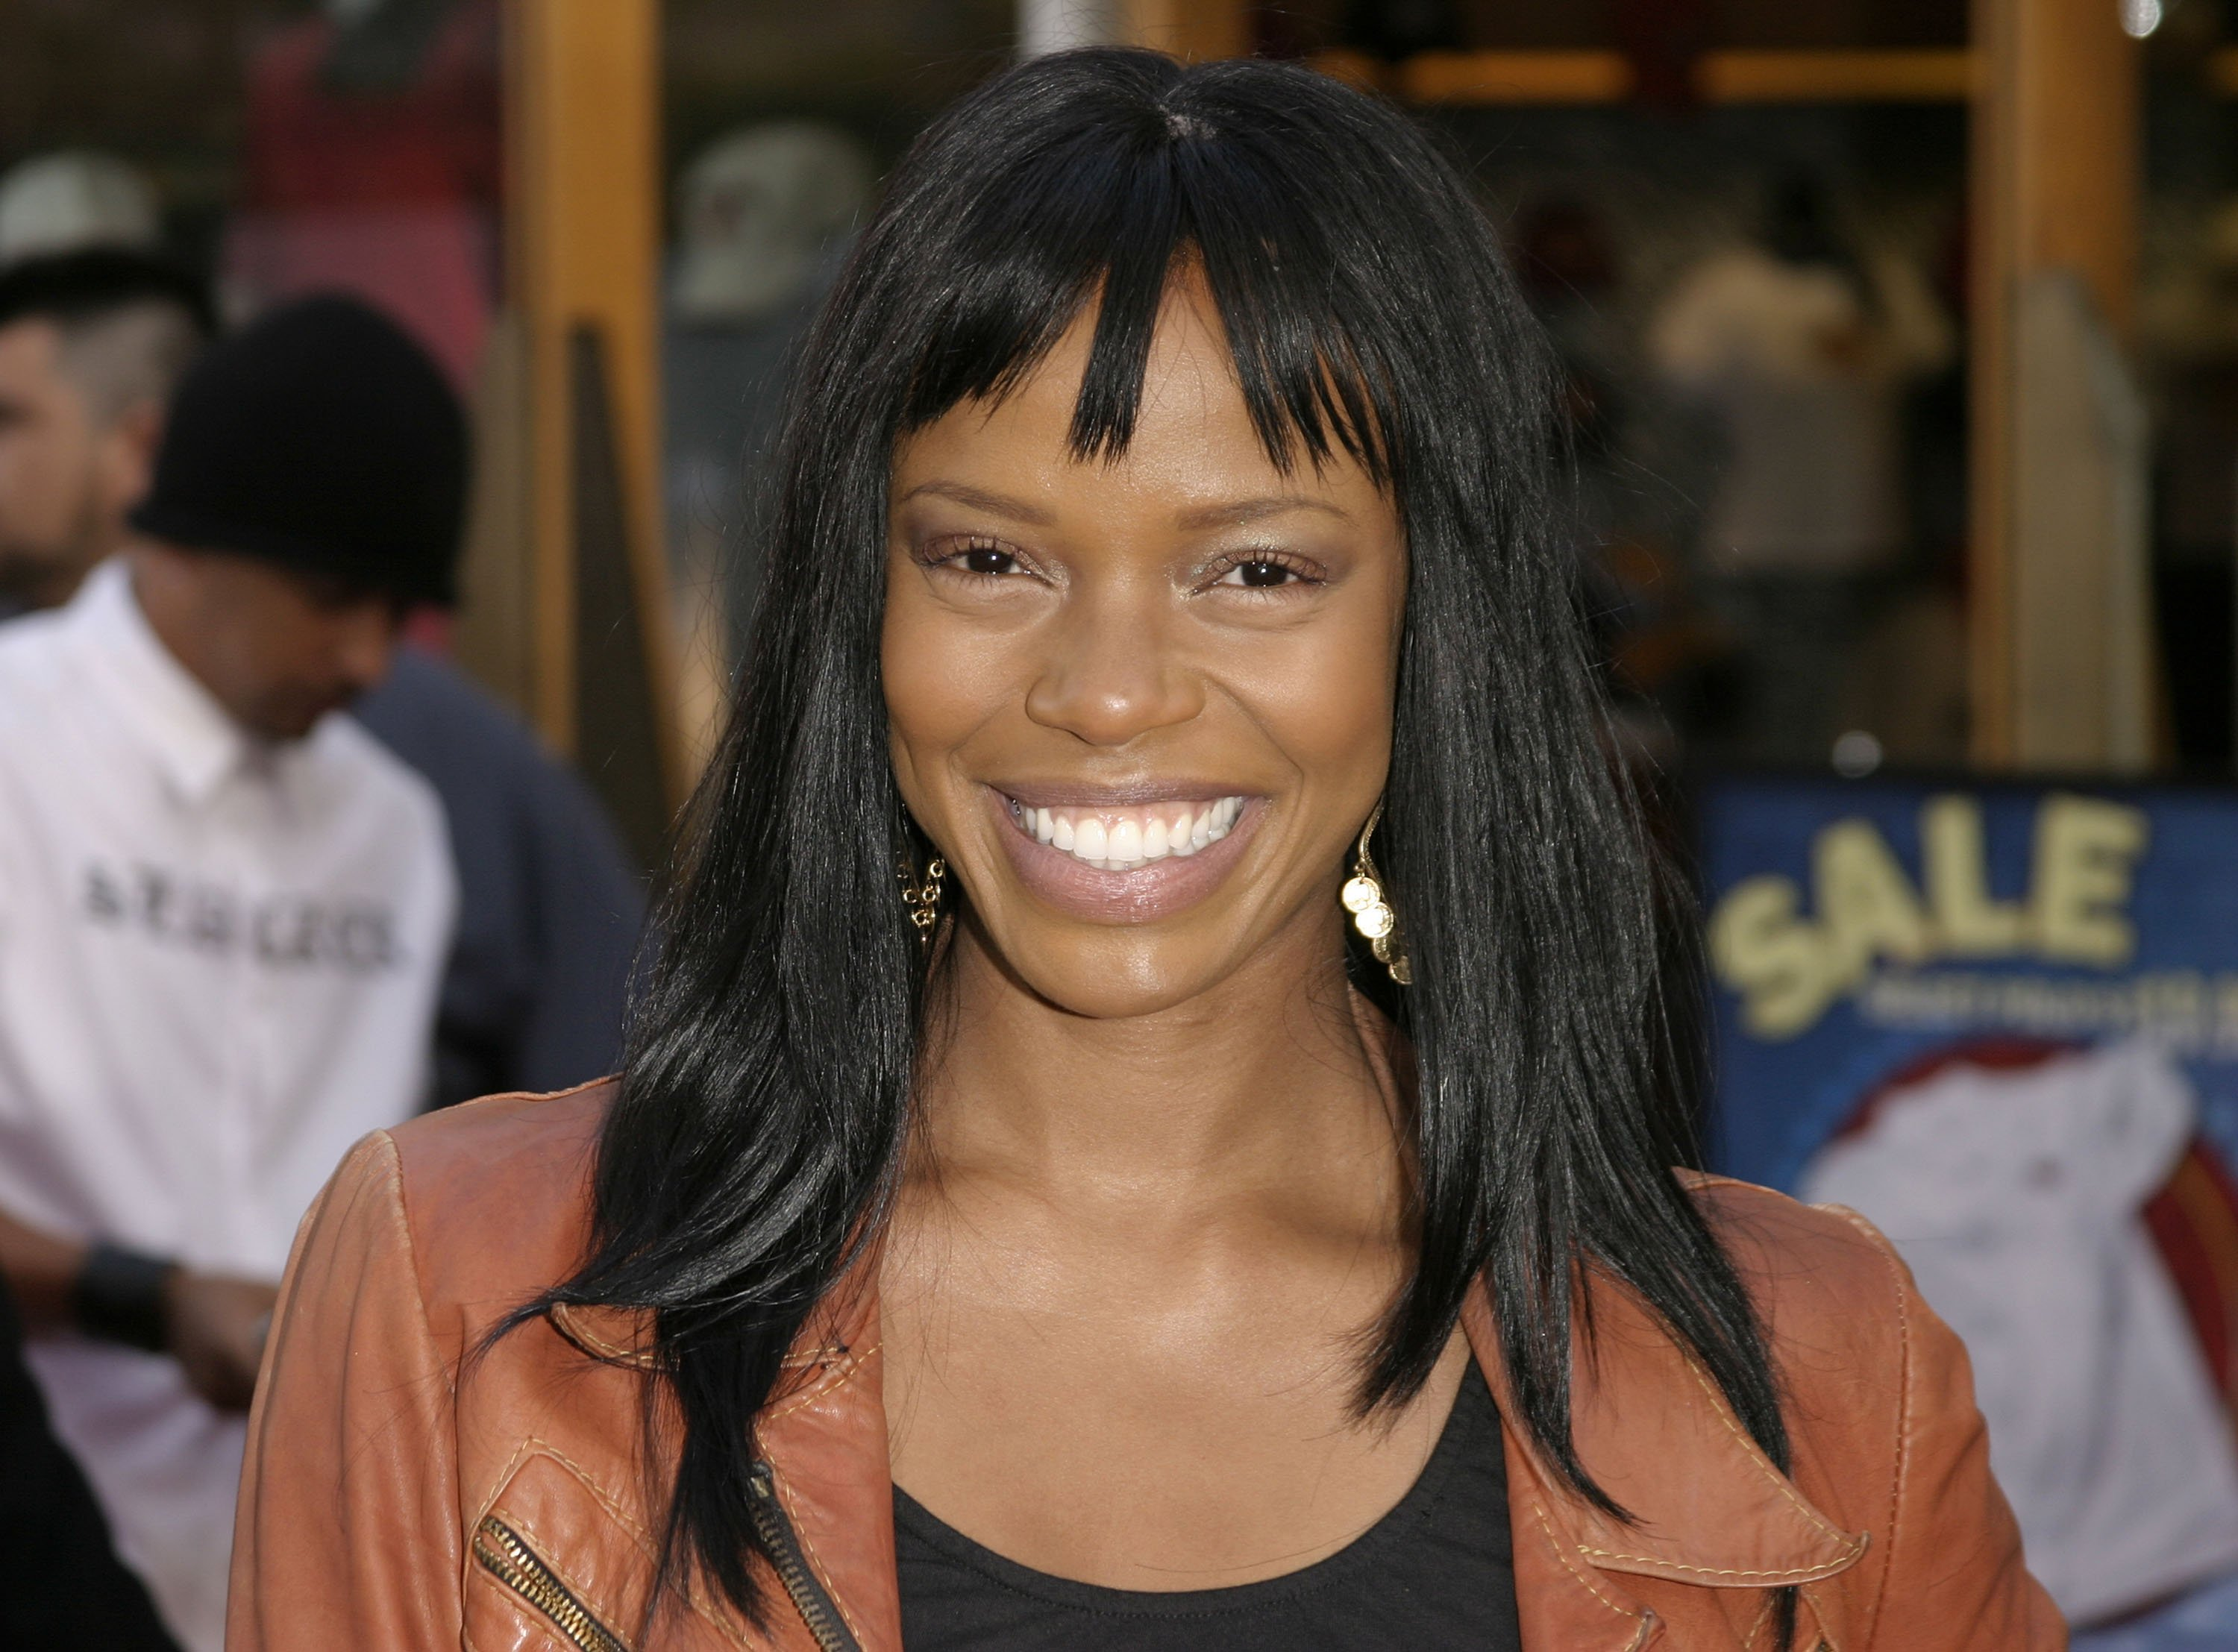 """Jill Jones during World Premiere of """"2 Fast 2 Furious"""" at Universal Amphitheatre in Universal City, California, United States on June 3, 2003.   Photo: Getty Images"""